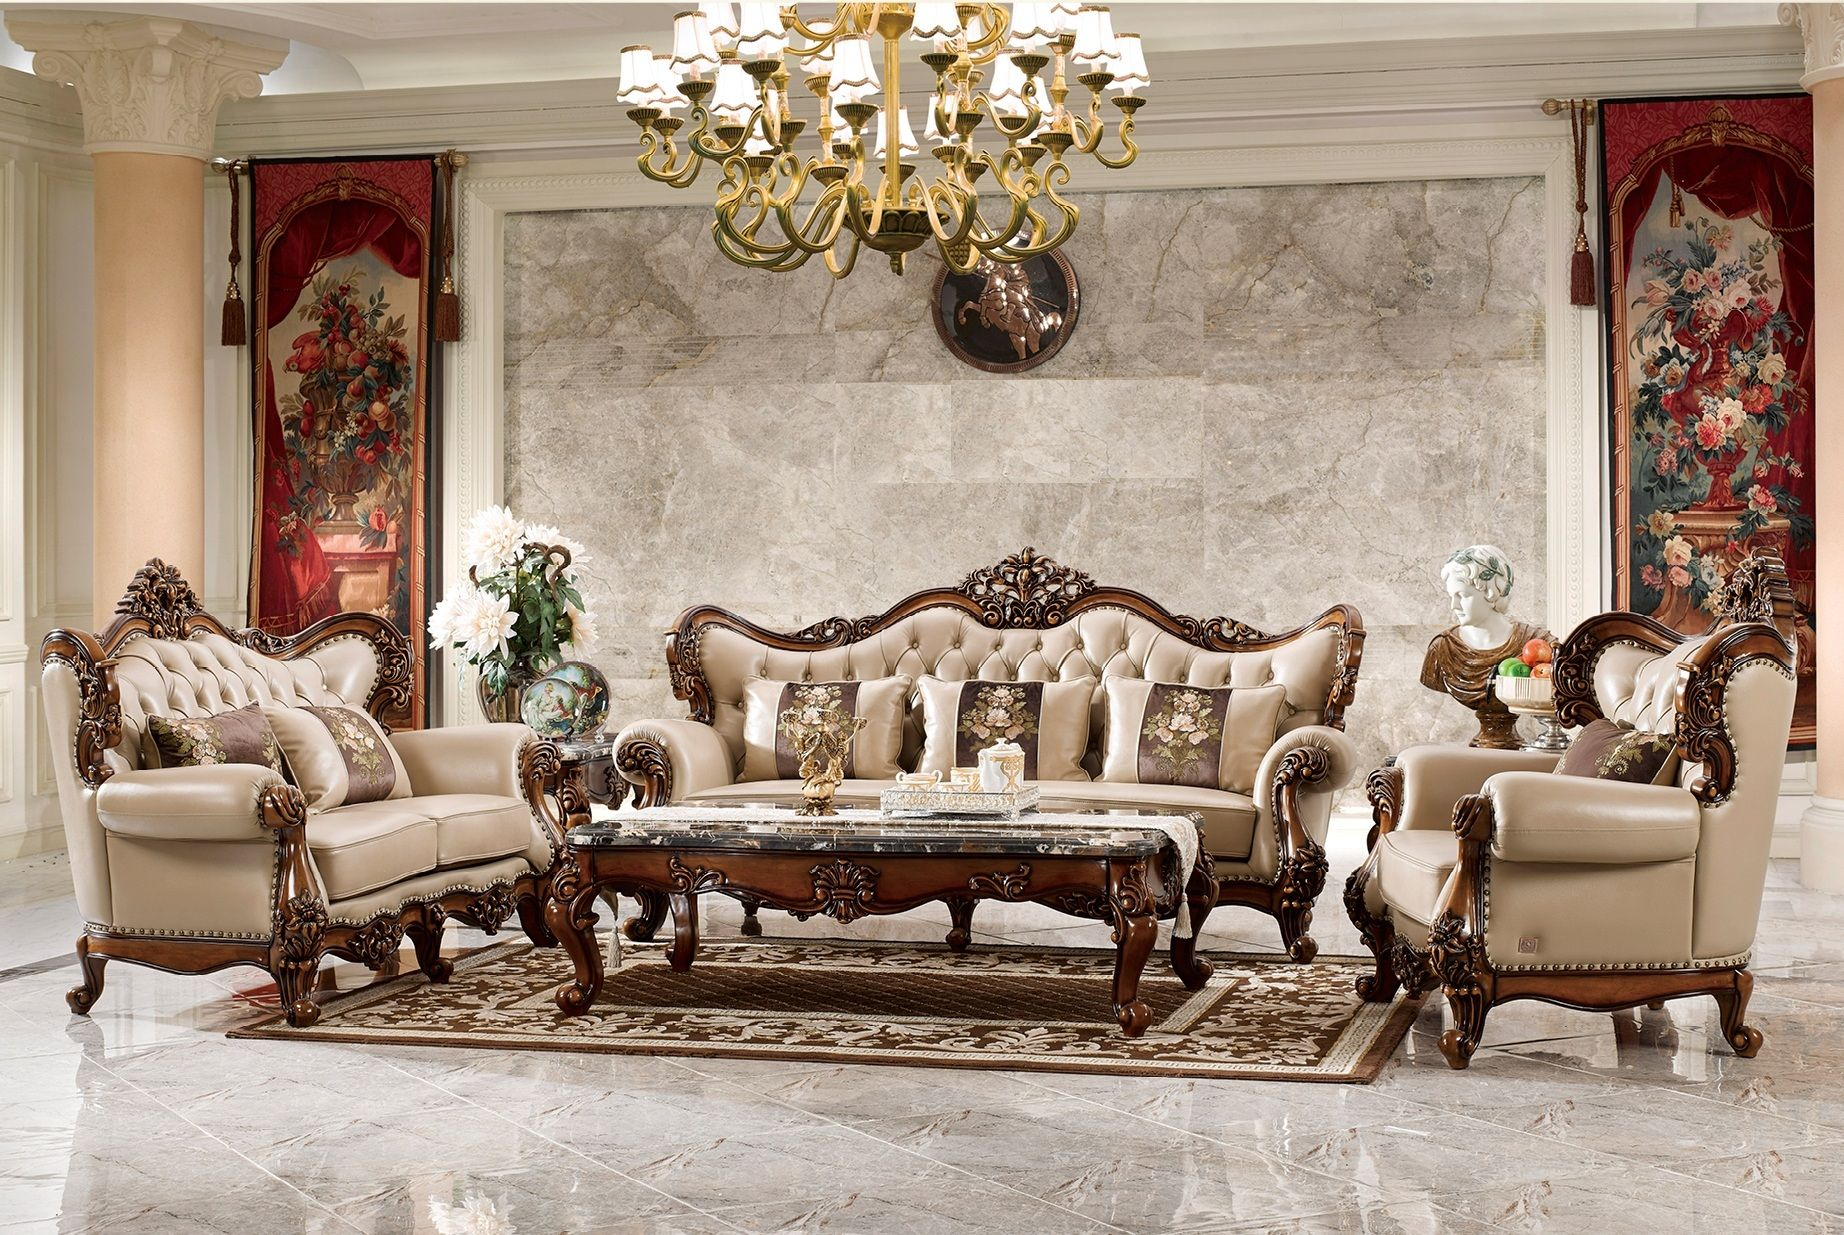 Ma Xiaoying Genuine Leather Traditional Collection Living Room Furniture Sets Sofa Loveseat And Chair And 2t Furnitur Mewah Furnitur Ruang Keluarga Set Sofa